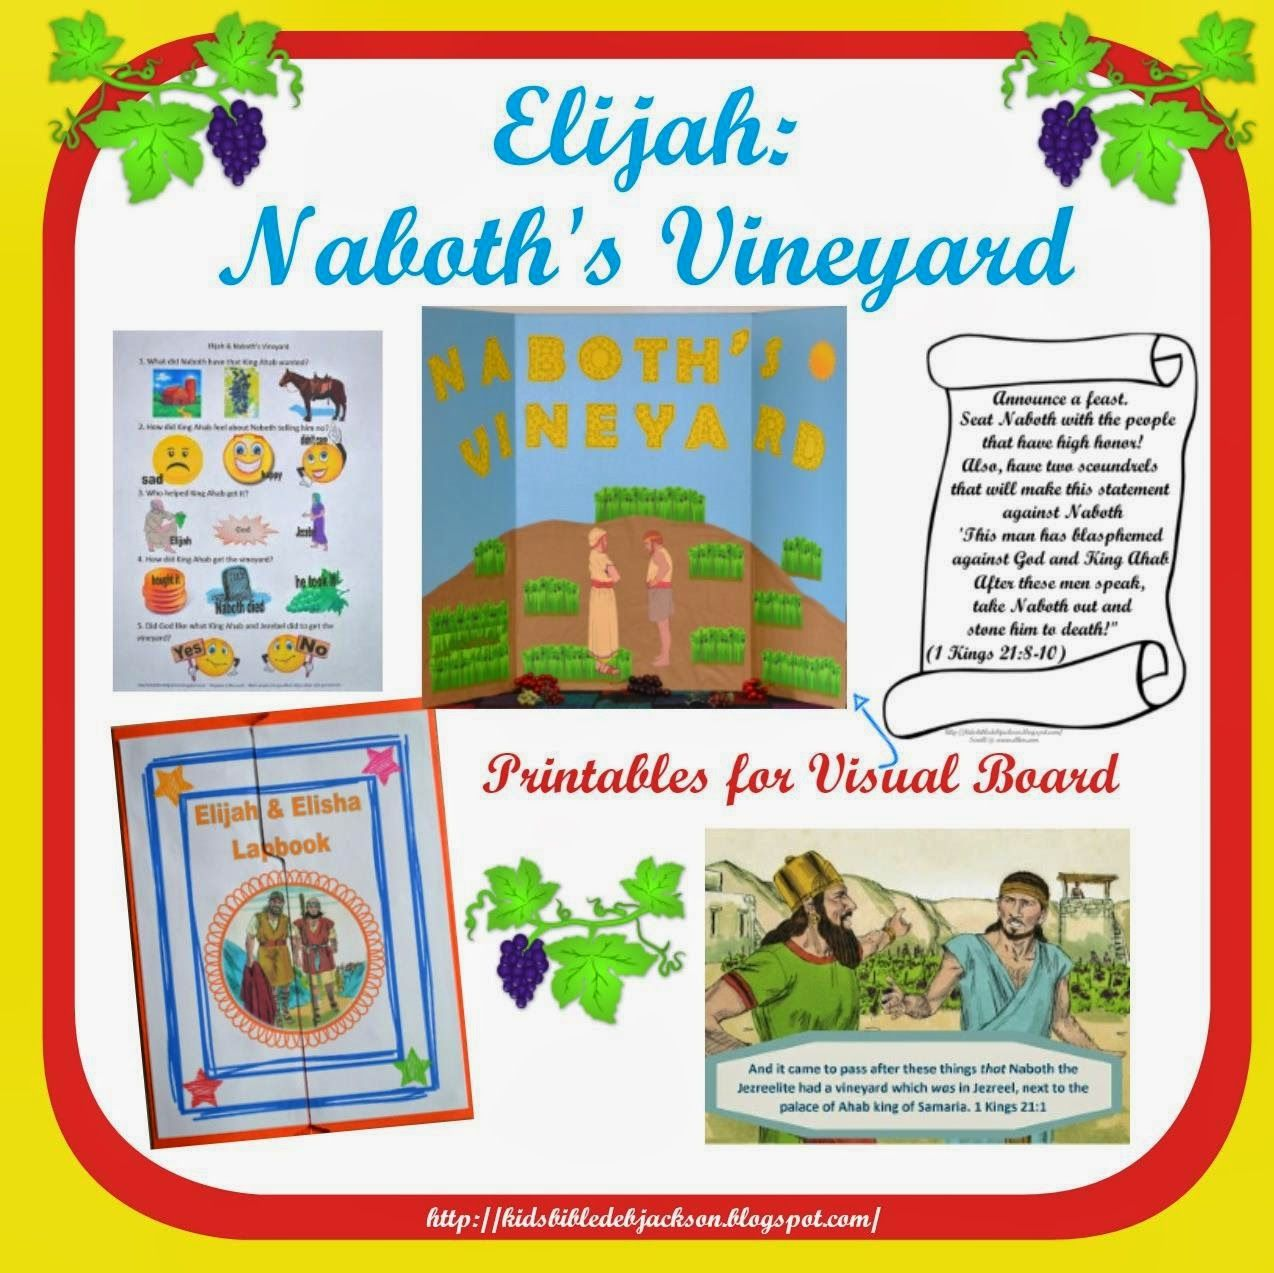 Elijah Amp Naboth S Vineyard With Printables For A Science